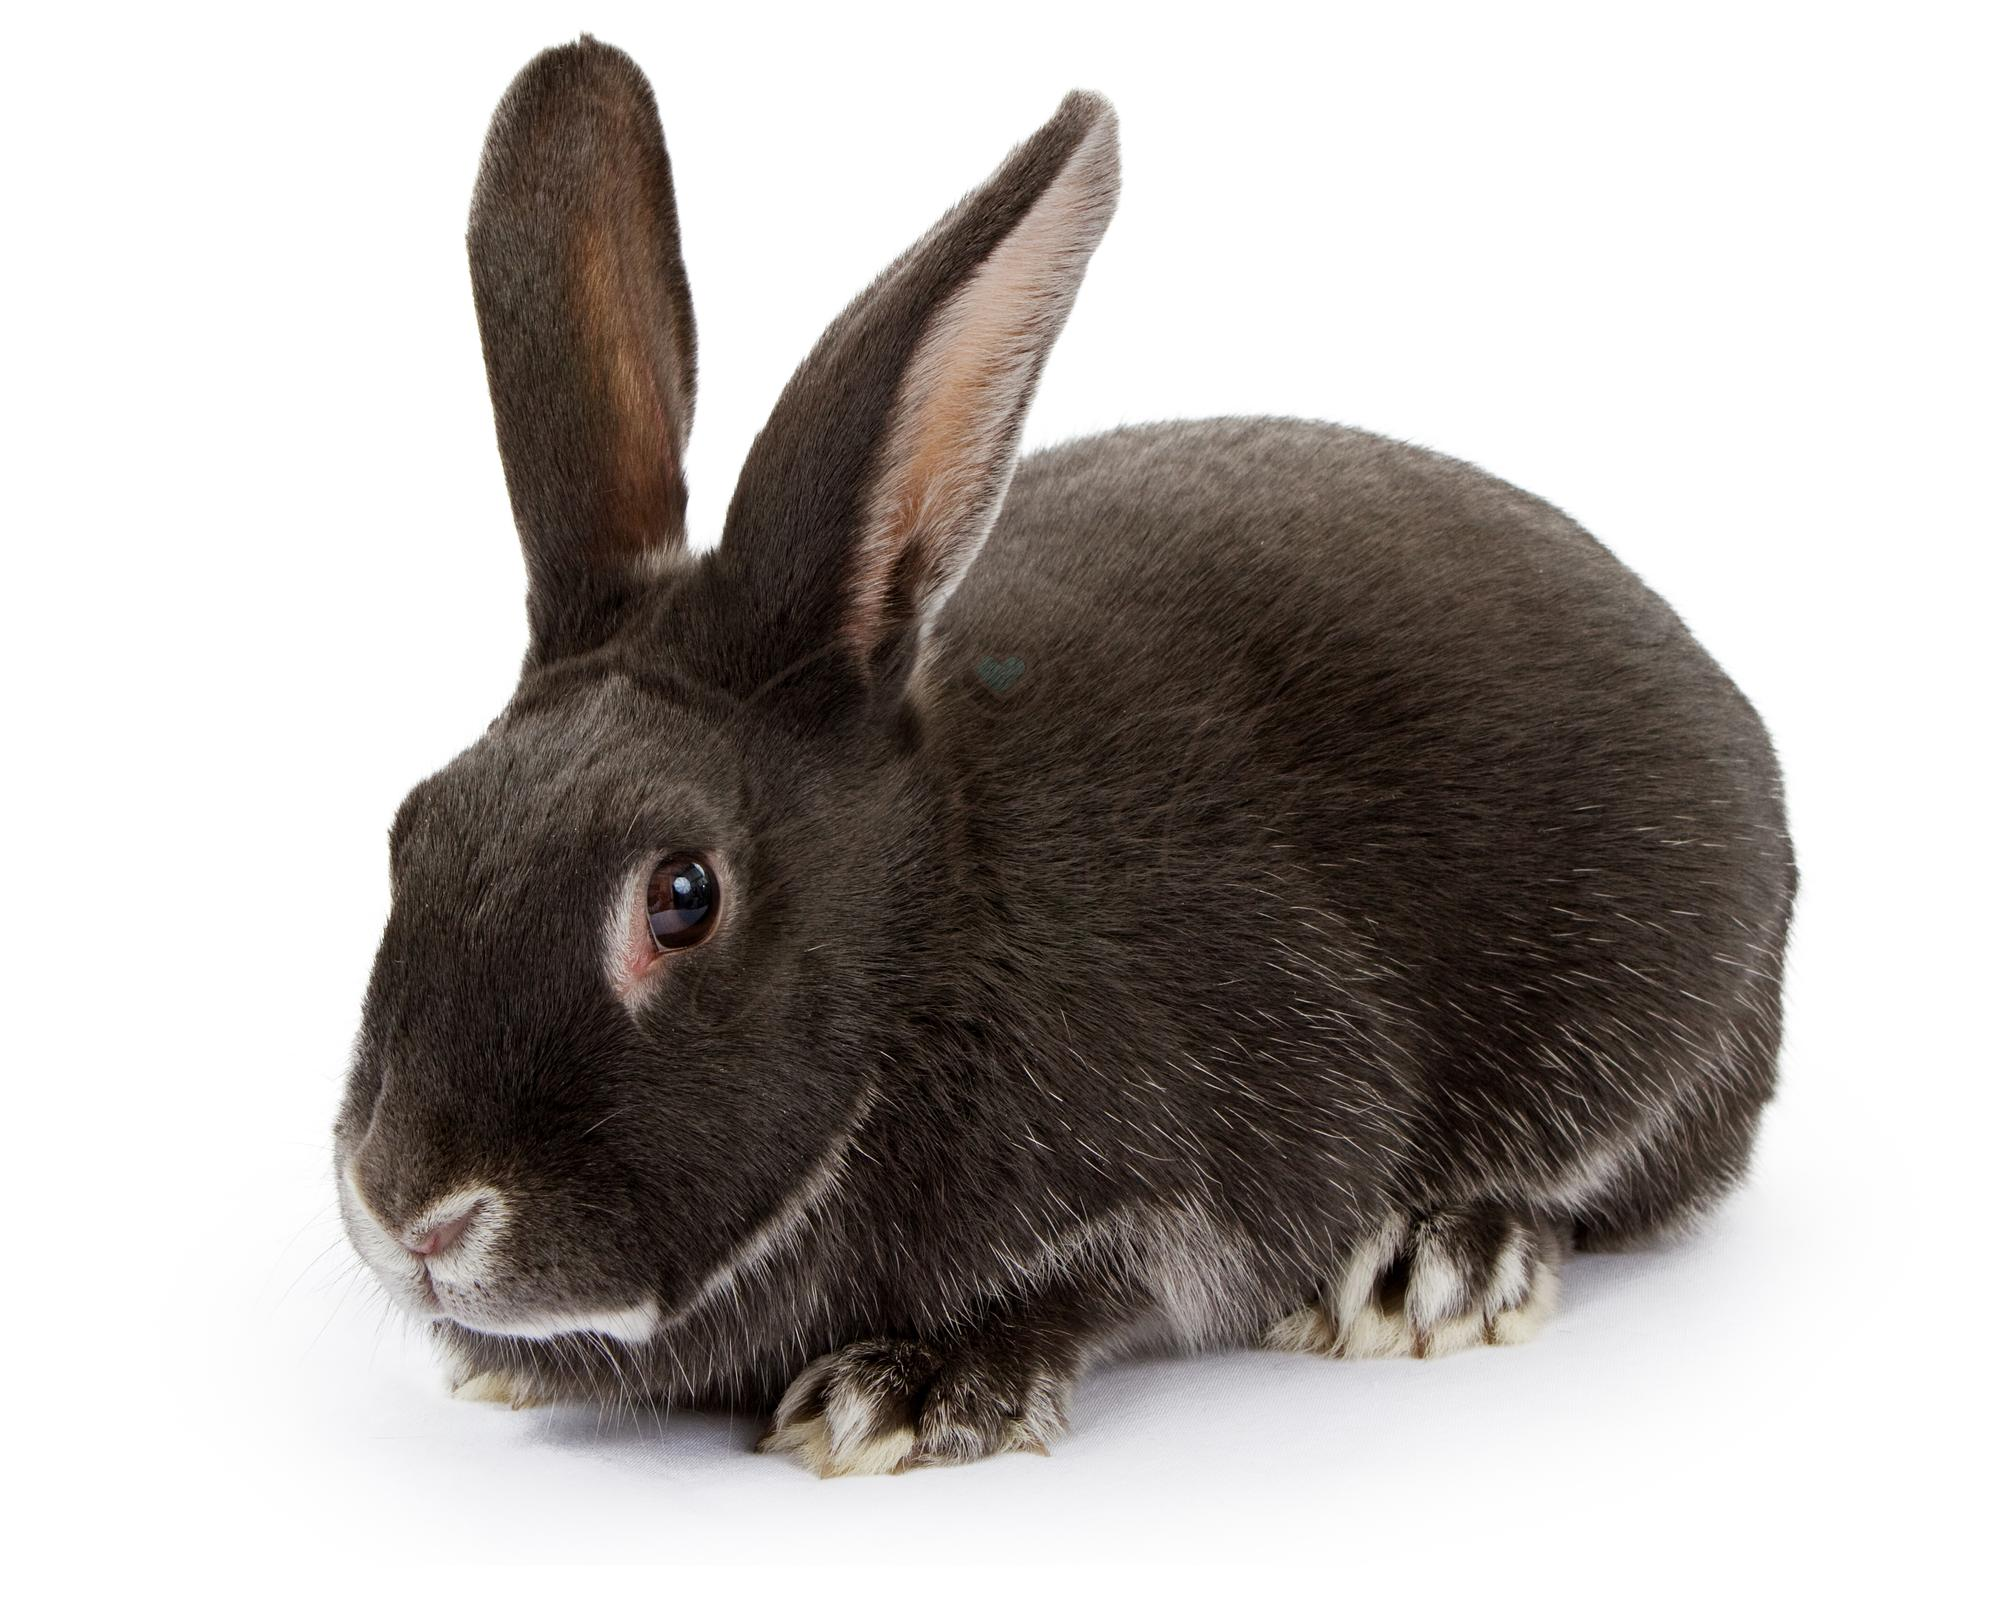 A Dark Colored Rabbit Isolated on White